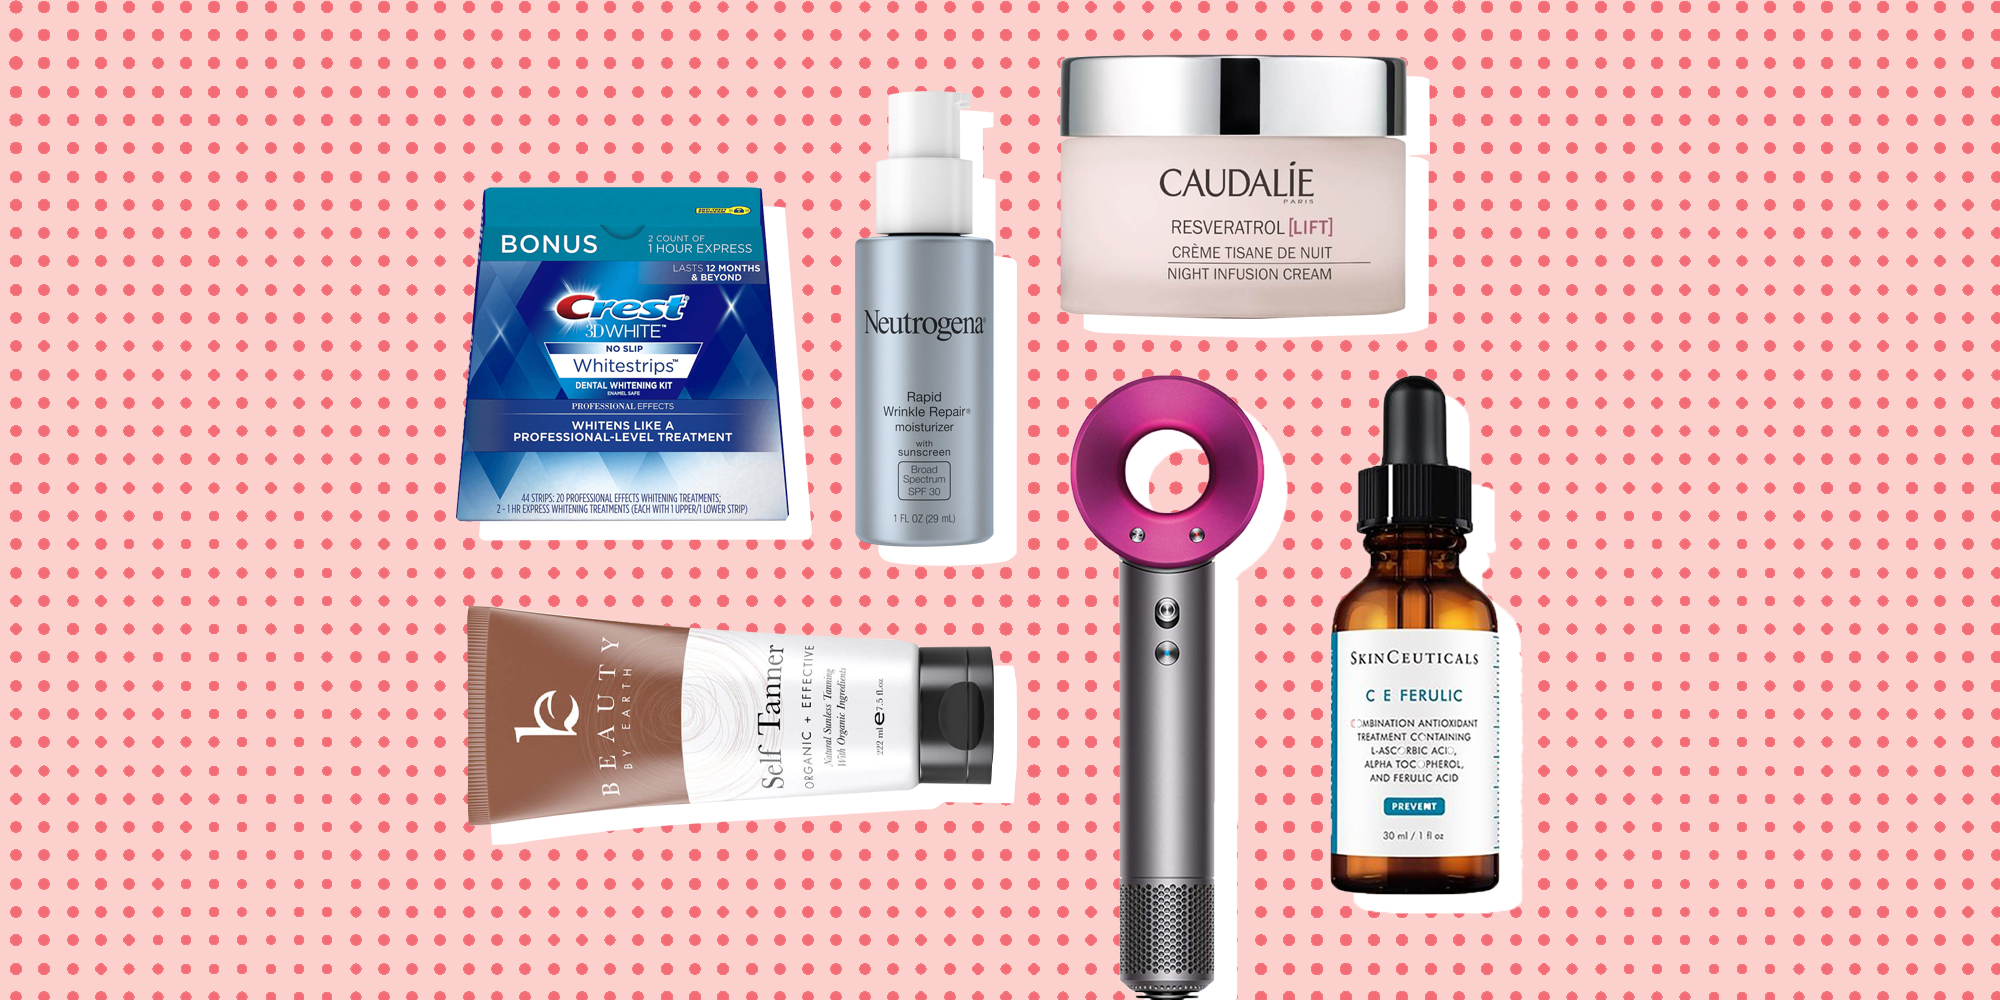 The 10 Beauty Products Our Readers Couldn't Stop Buying in 2019